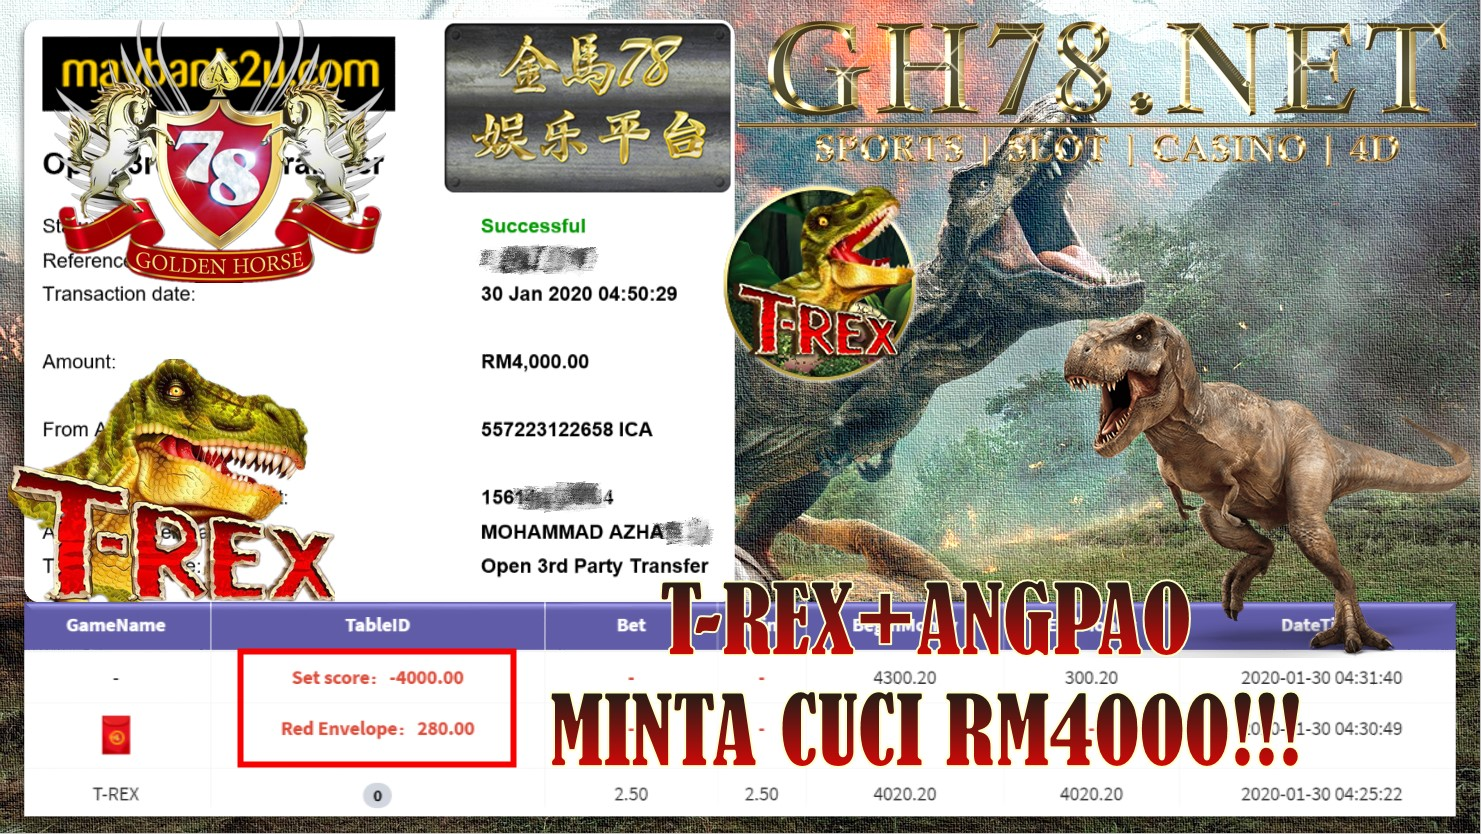 2020 NEW YEAR !!! MEMBER MAIN 918KISS, T-REX , WITHDRAW RM4000!!!!